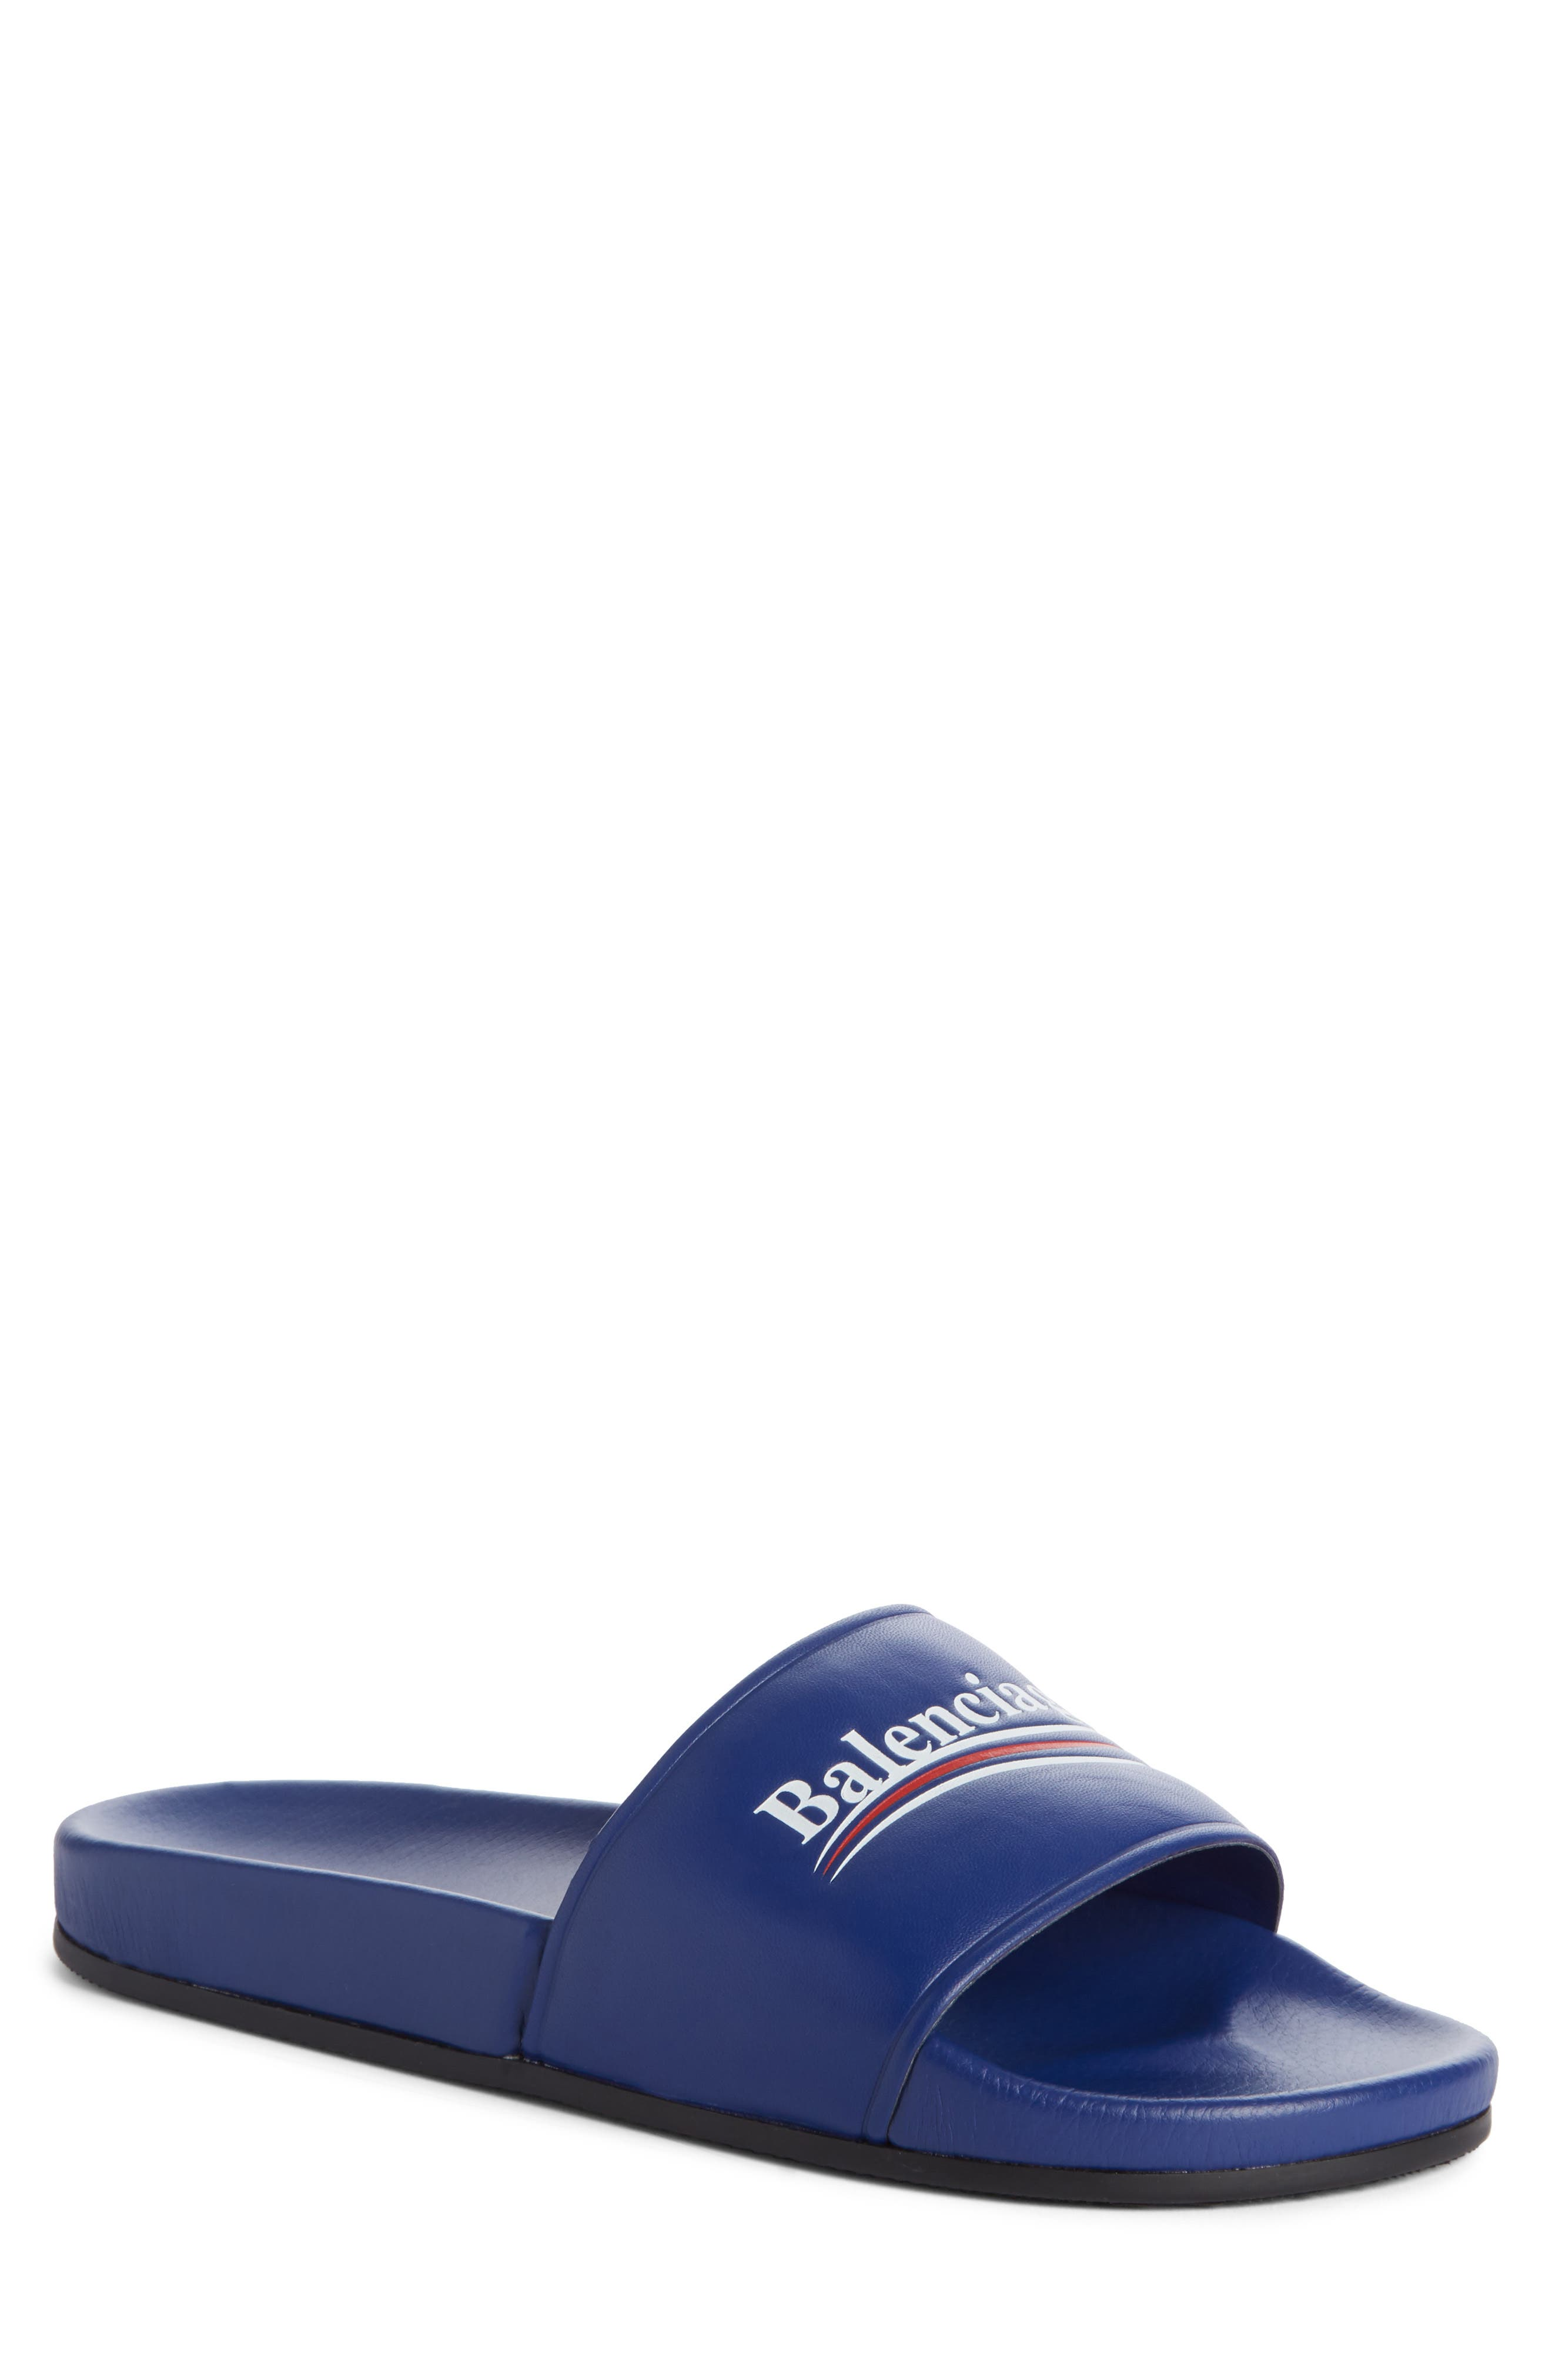 Retro Logo Slide Sandal,                         Main,                         color, 489